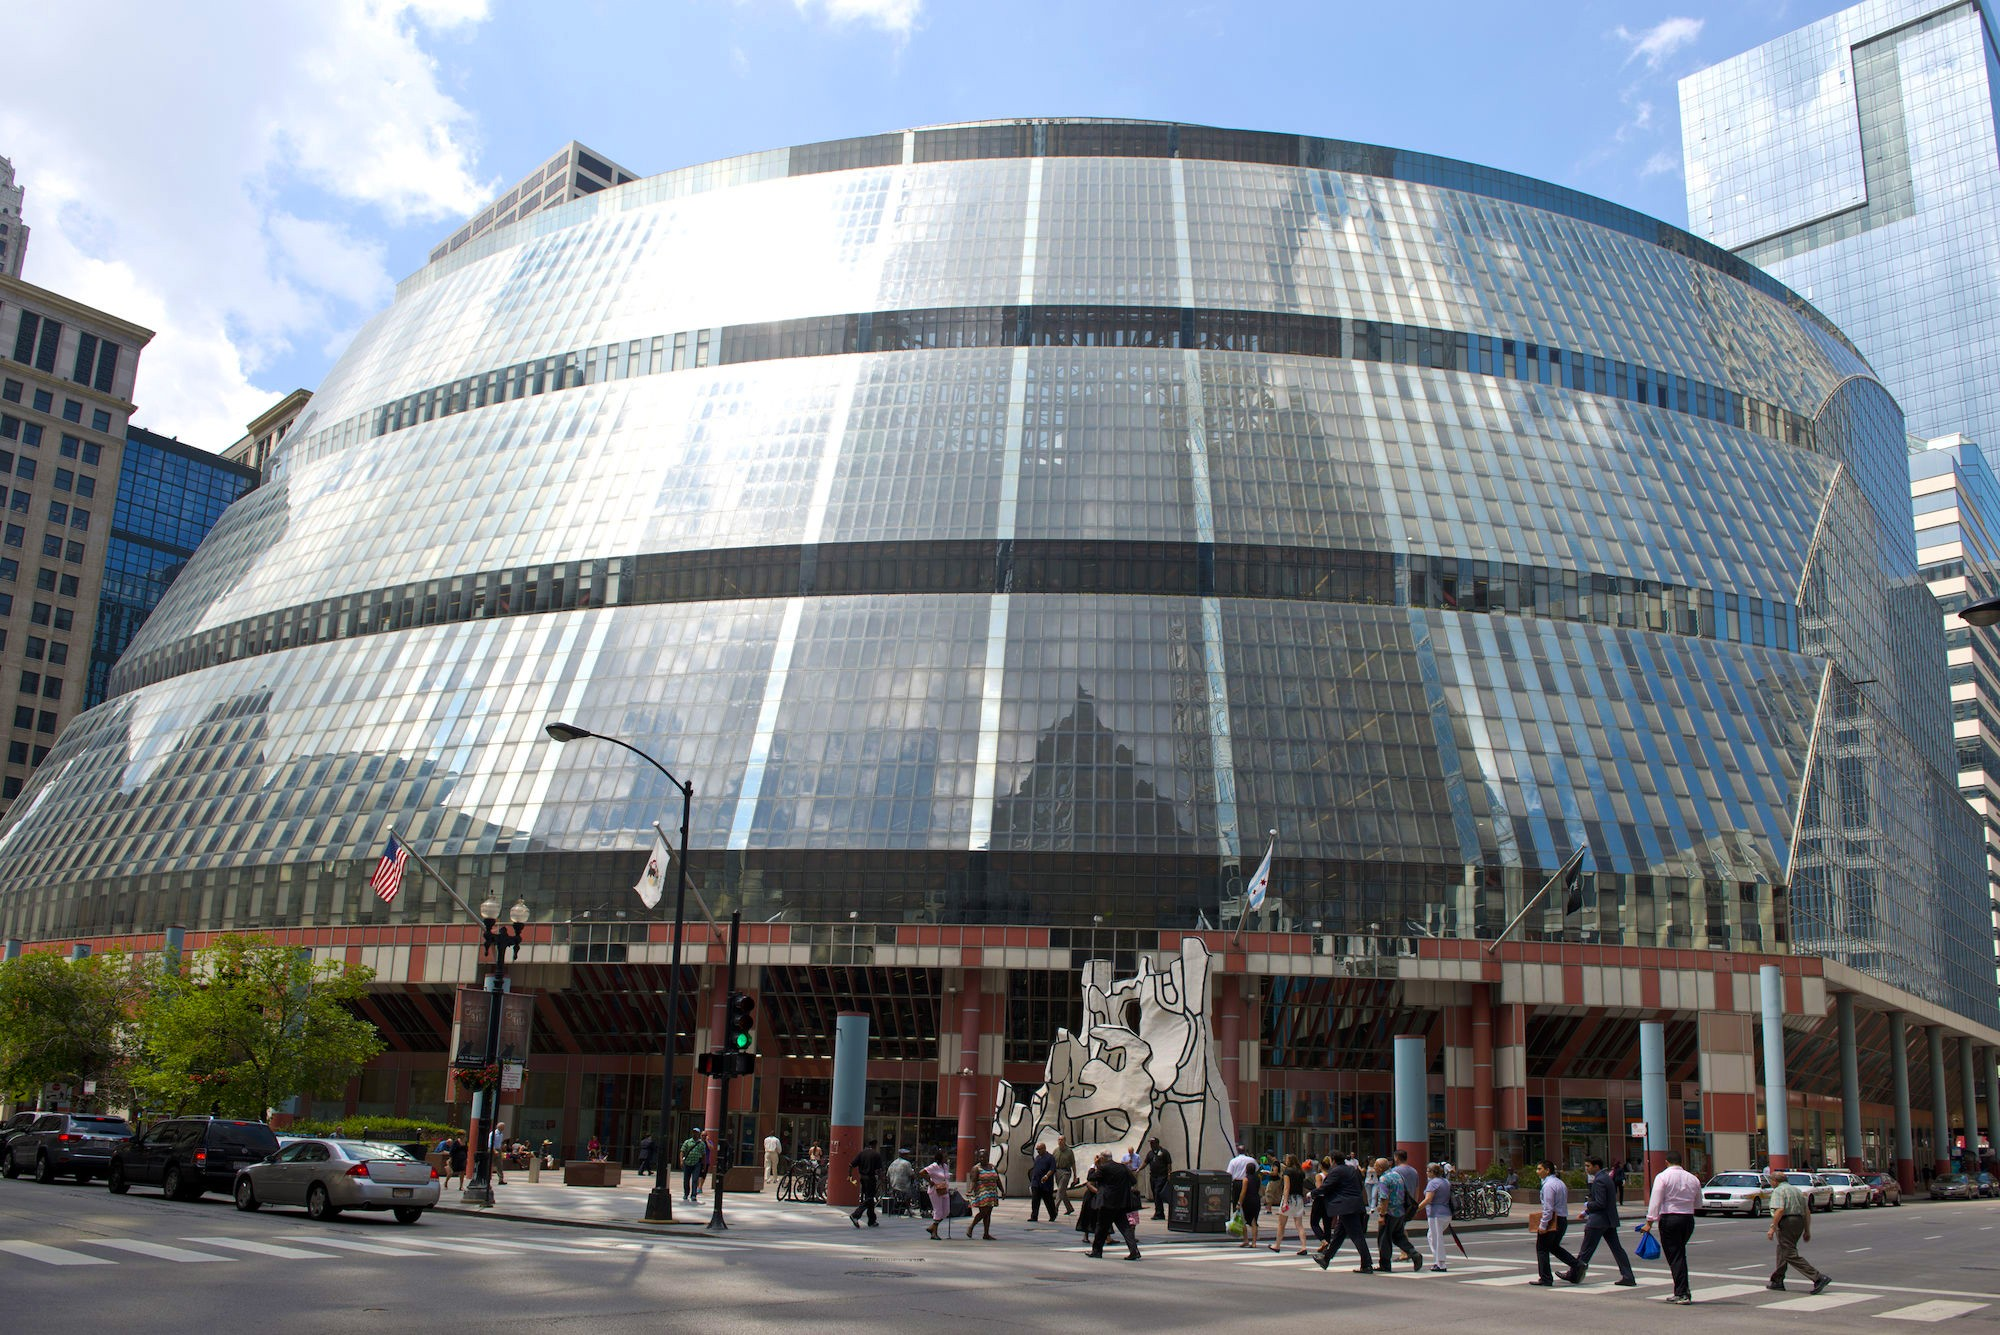 renew drivers license thompson center chicago